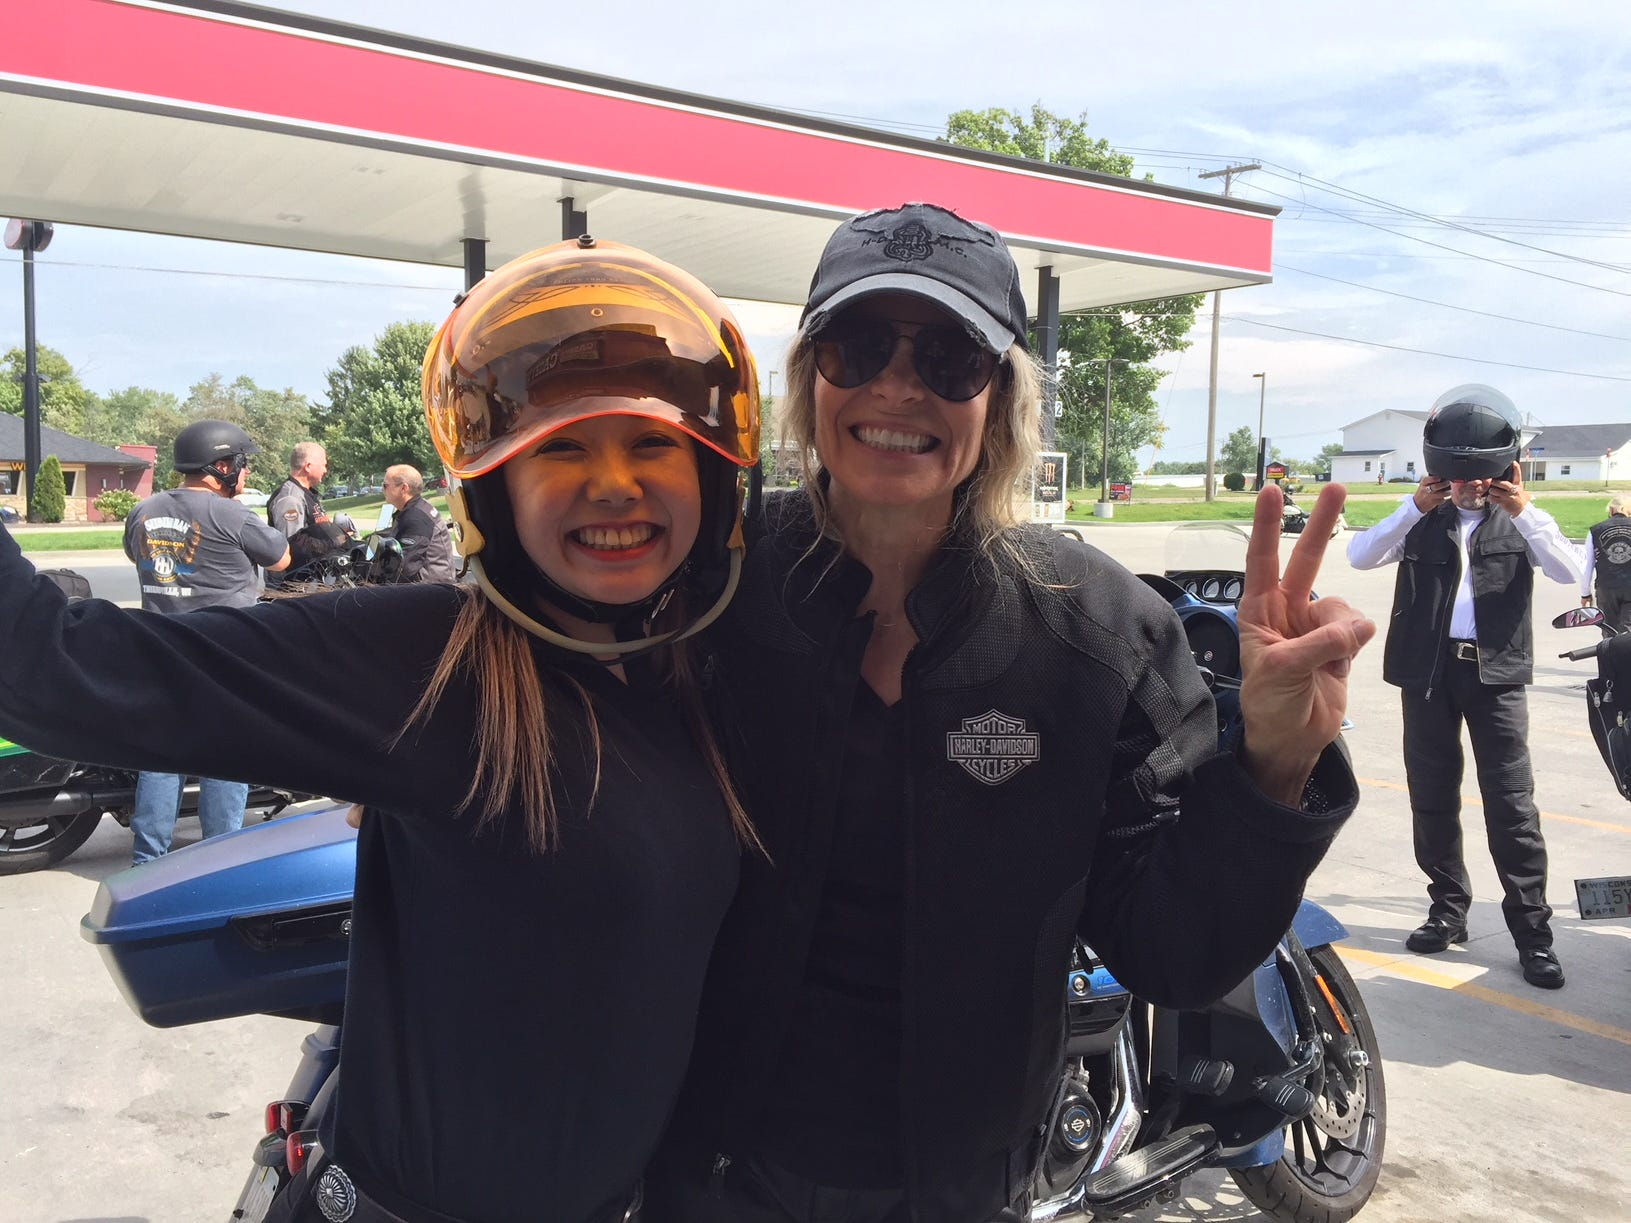 Karen Davidson greets a rider from Osaka, Japan during a stop for gas in Brookfield, Mo. A group of international riders from several countries joined the Southwest leg of the Harley-Davidson 115th anniversary ride in Oklahoma City. They will travel to Milwaukee.